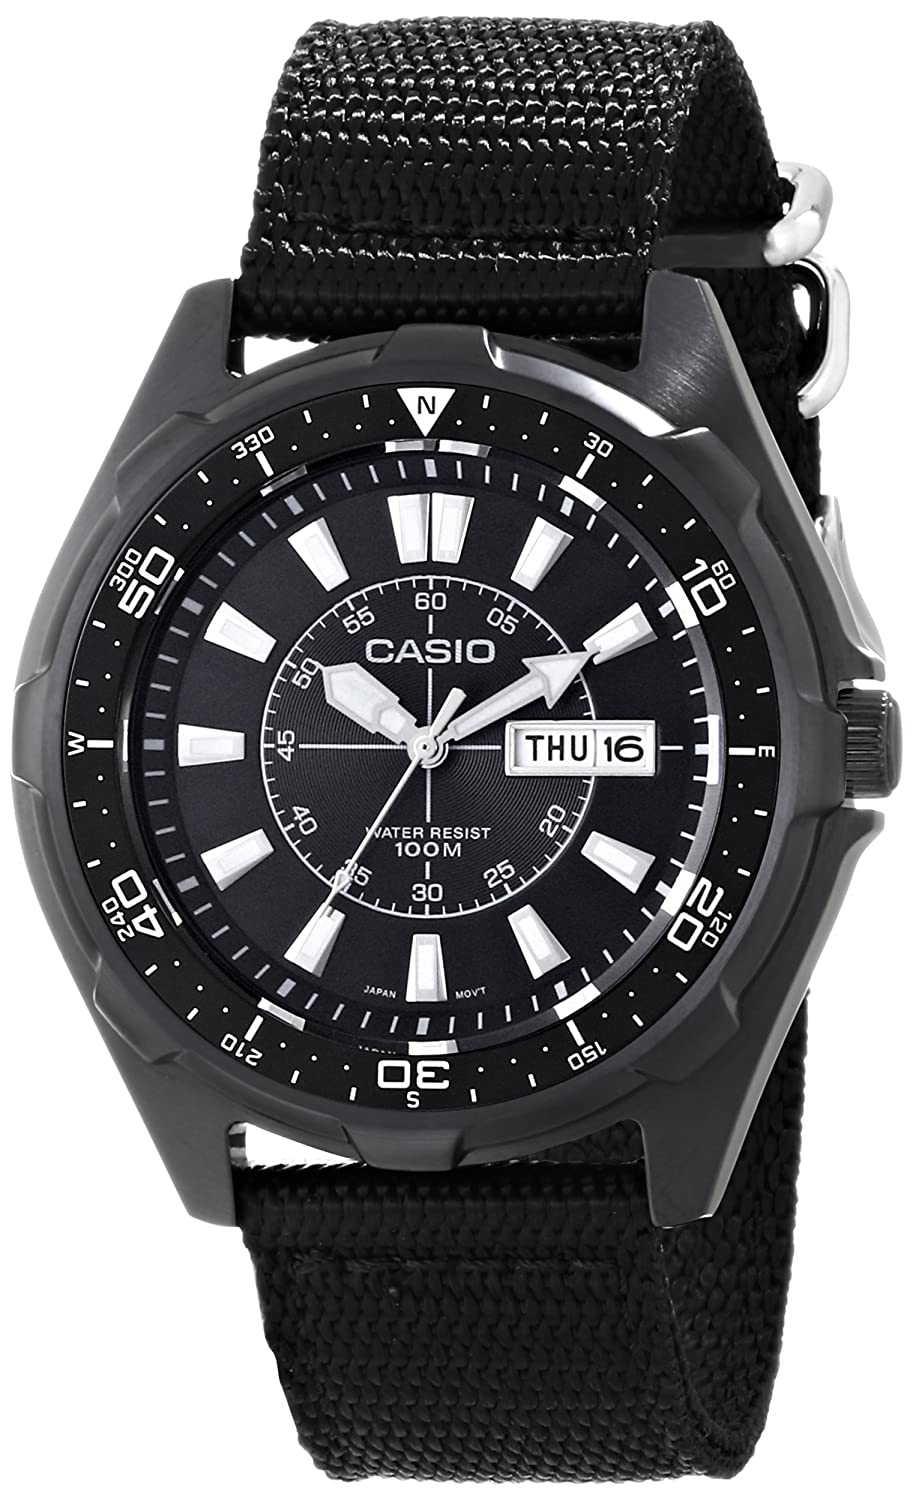 Amazon.com  Casio Men s AMW110-1AV Classic Stainless Steel Watch With Black  Nylon Band  Casio  Watches 0e652e7f97